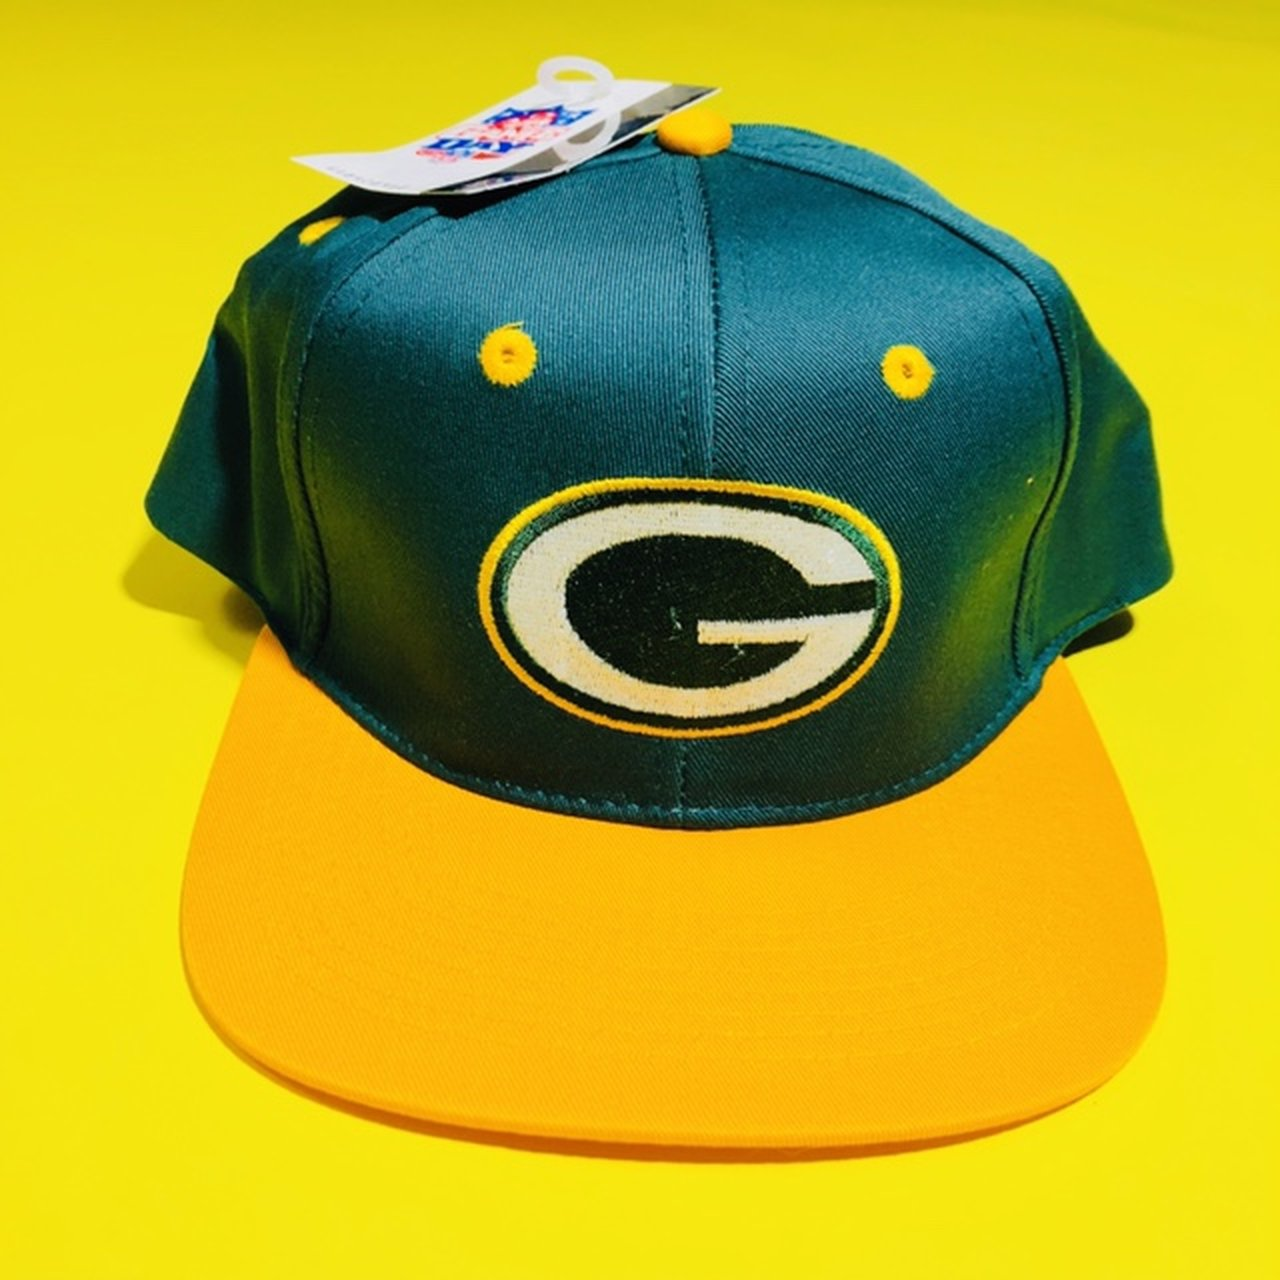 Deadstock NWT Vintage NFL Game Day Green Bay Packers Hat is - Depop 937f912c6